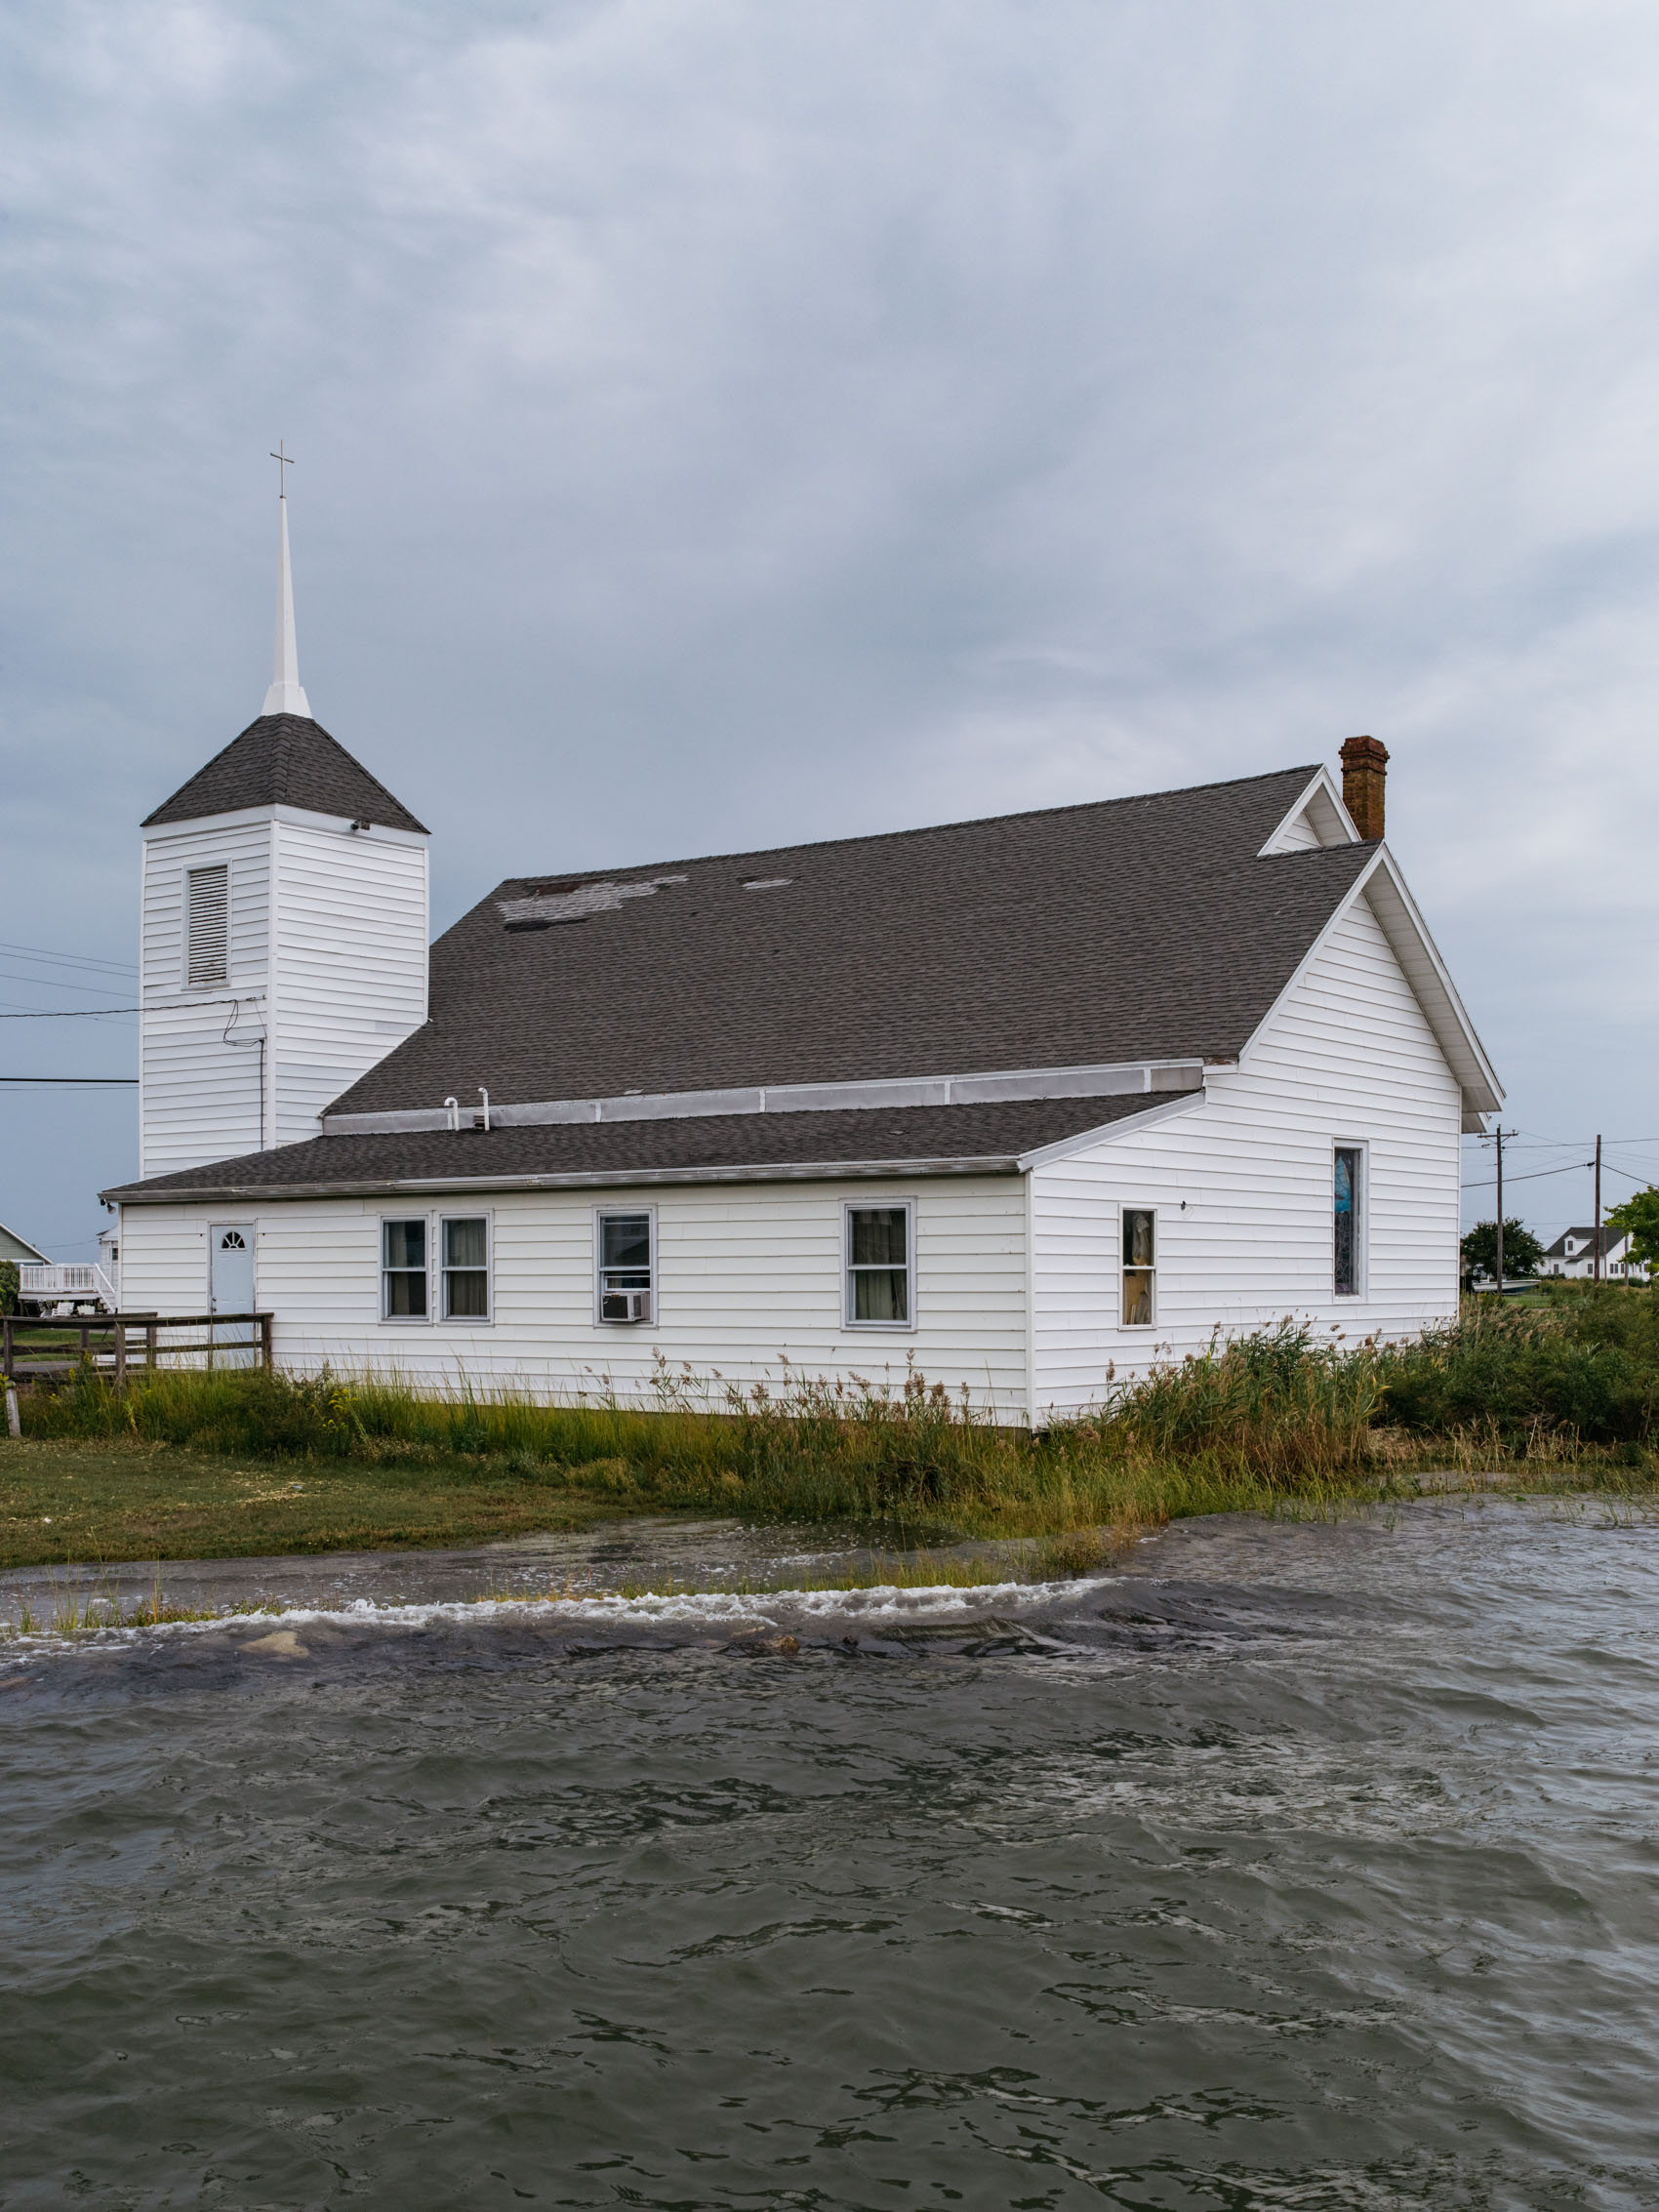 church with sea level rise issues water up to back door